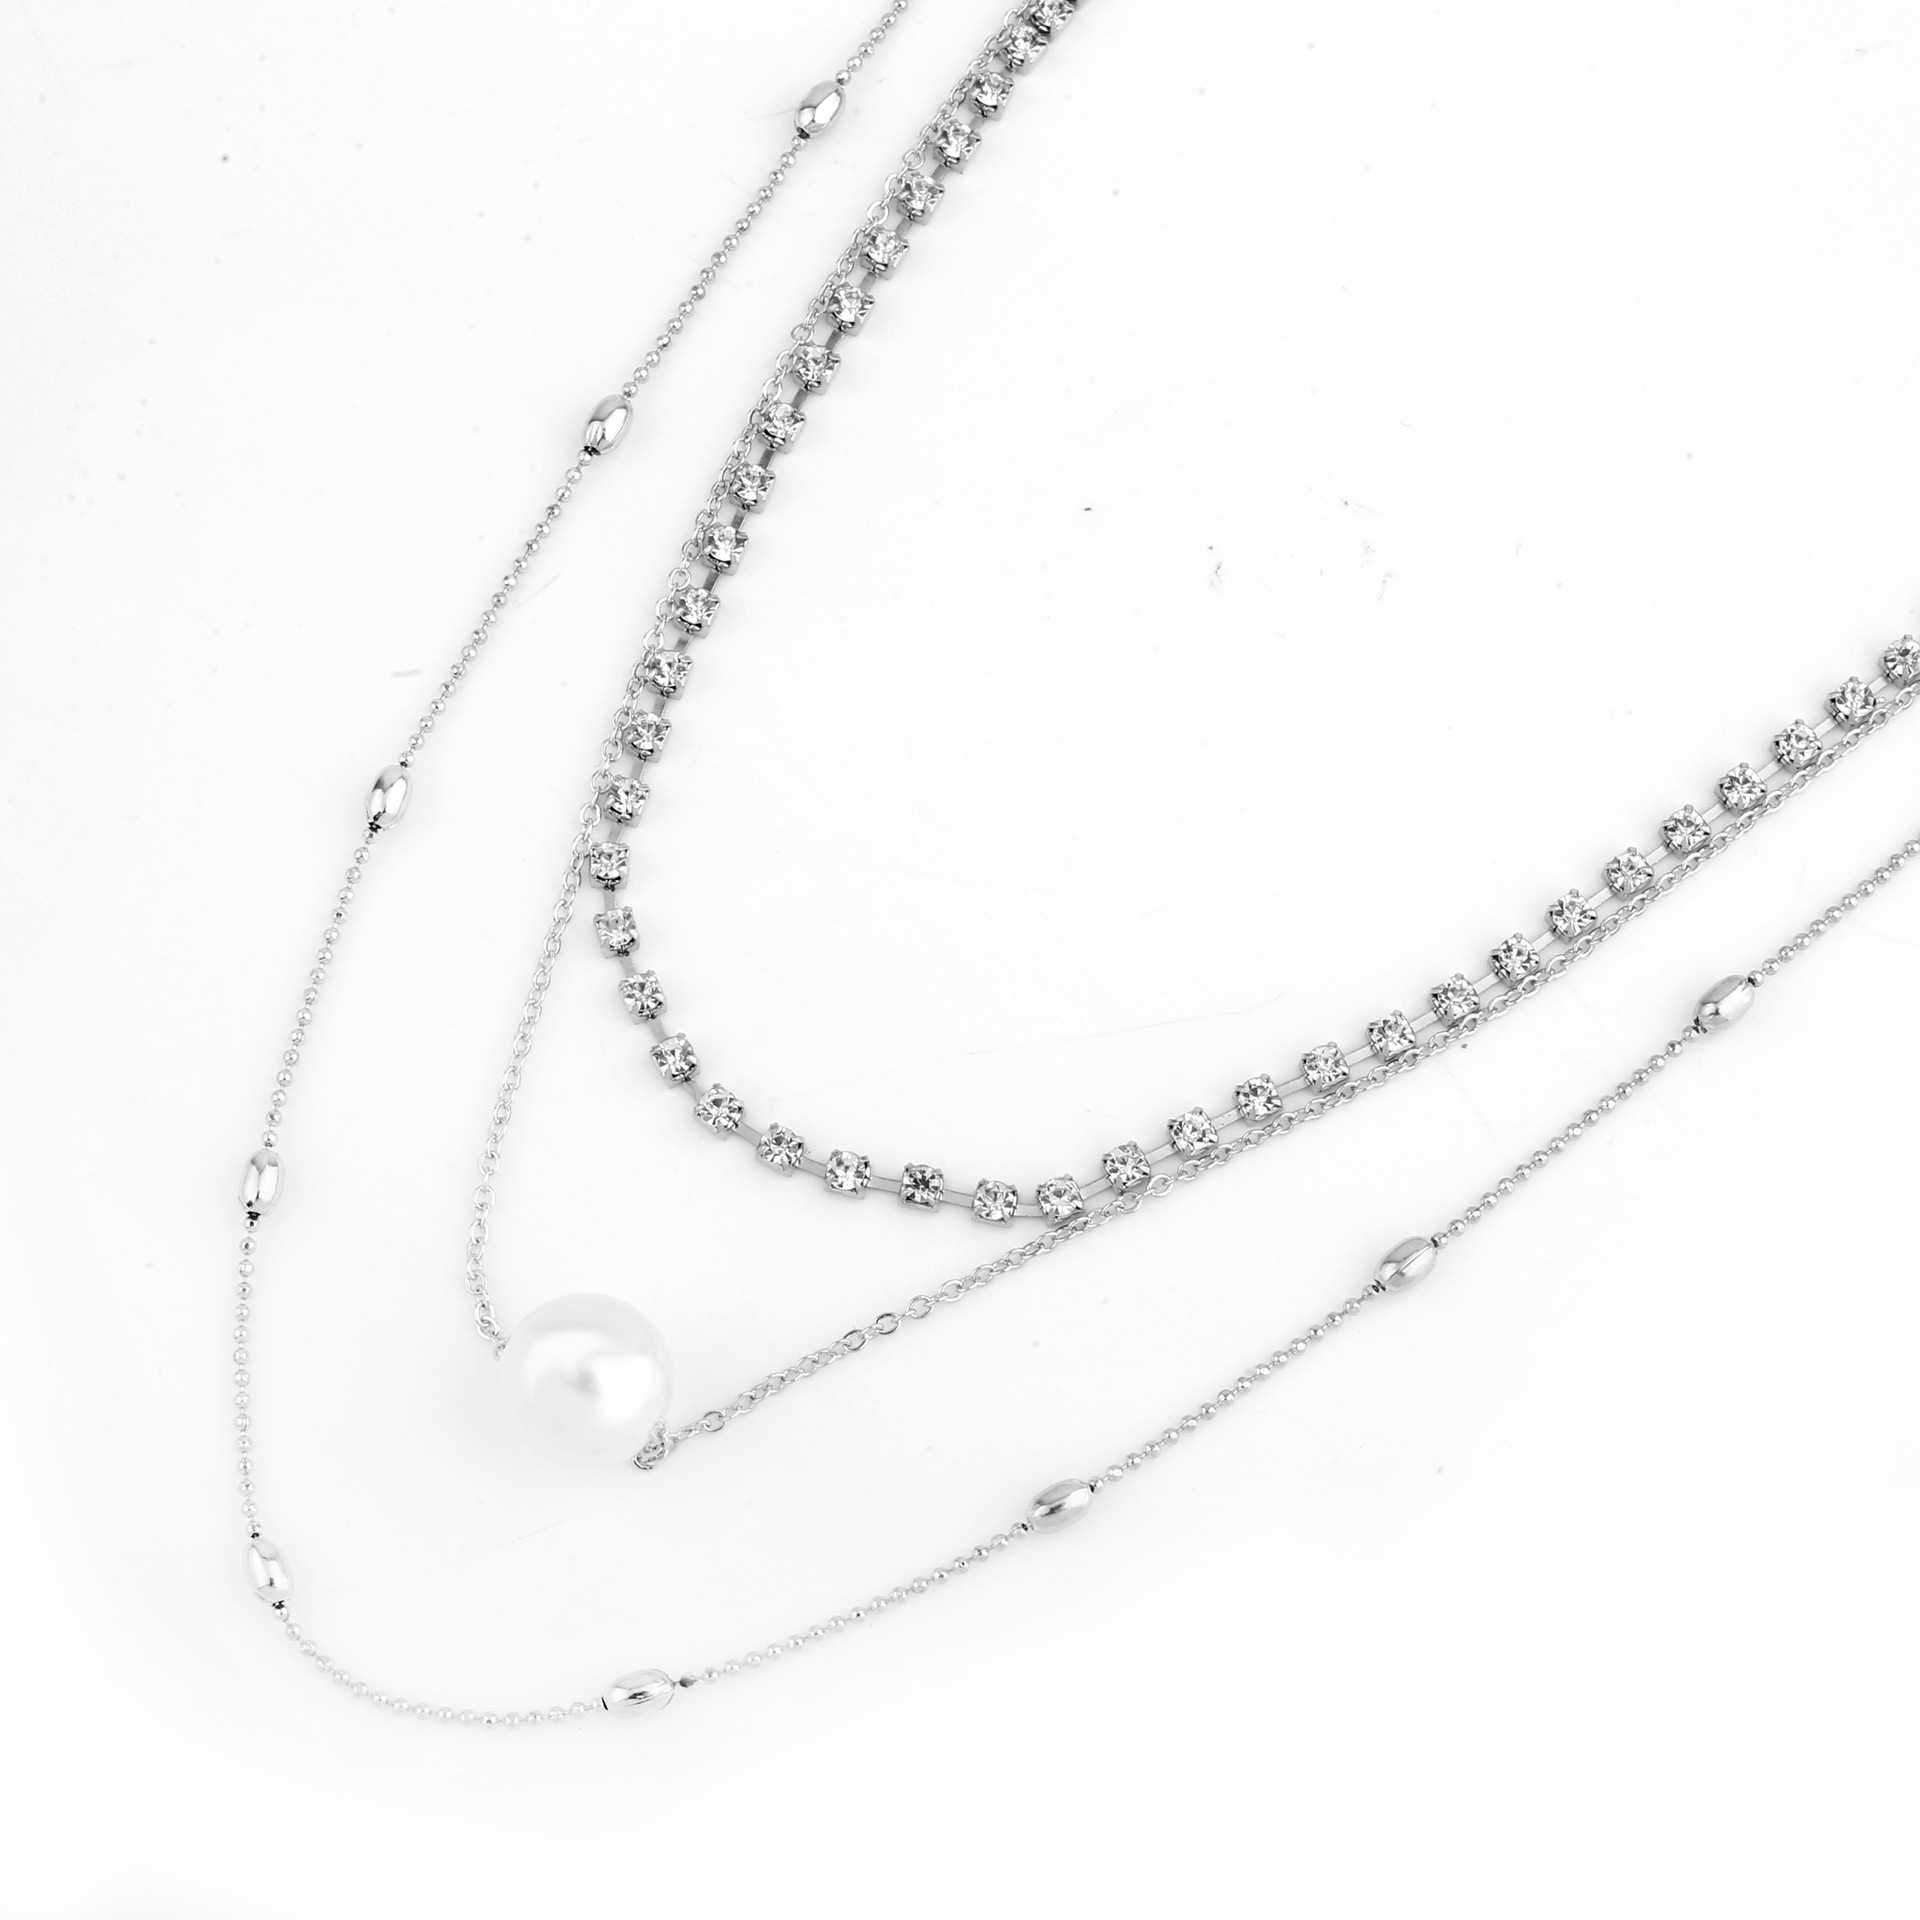 Silver Diamond Pendant Necklace Layered Long Necklace Pearl Choker